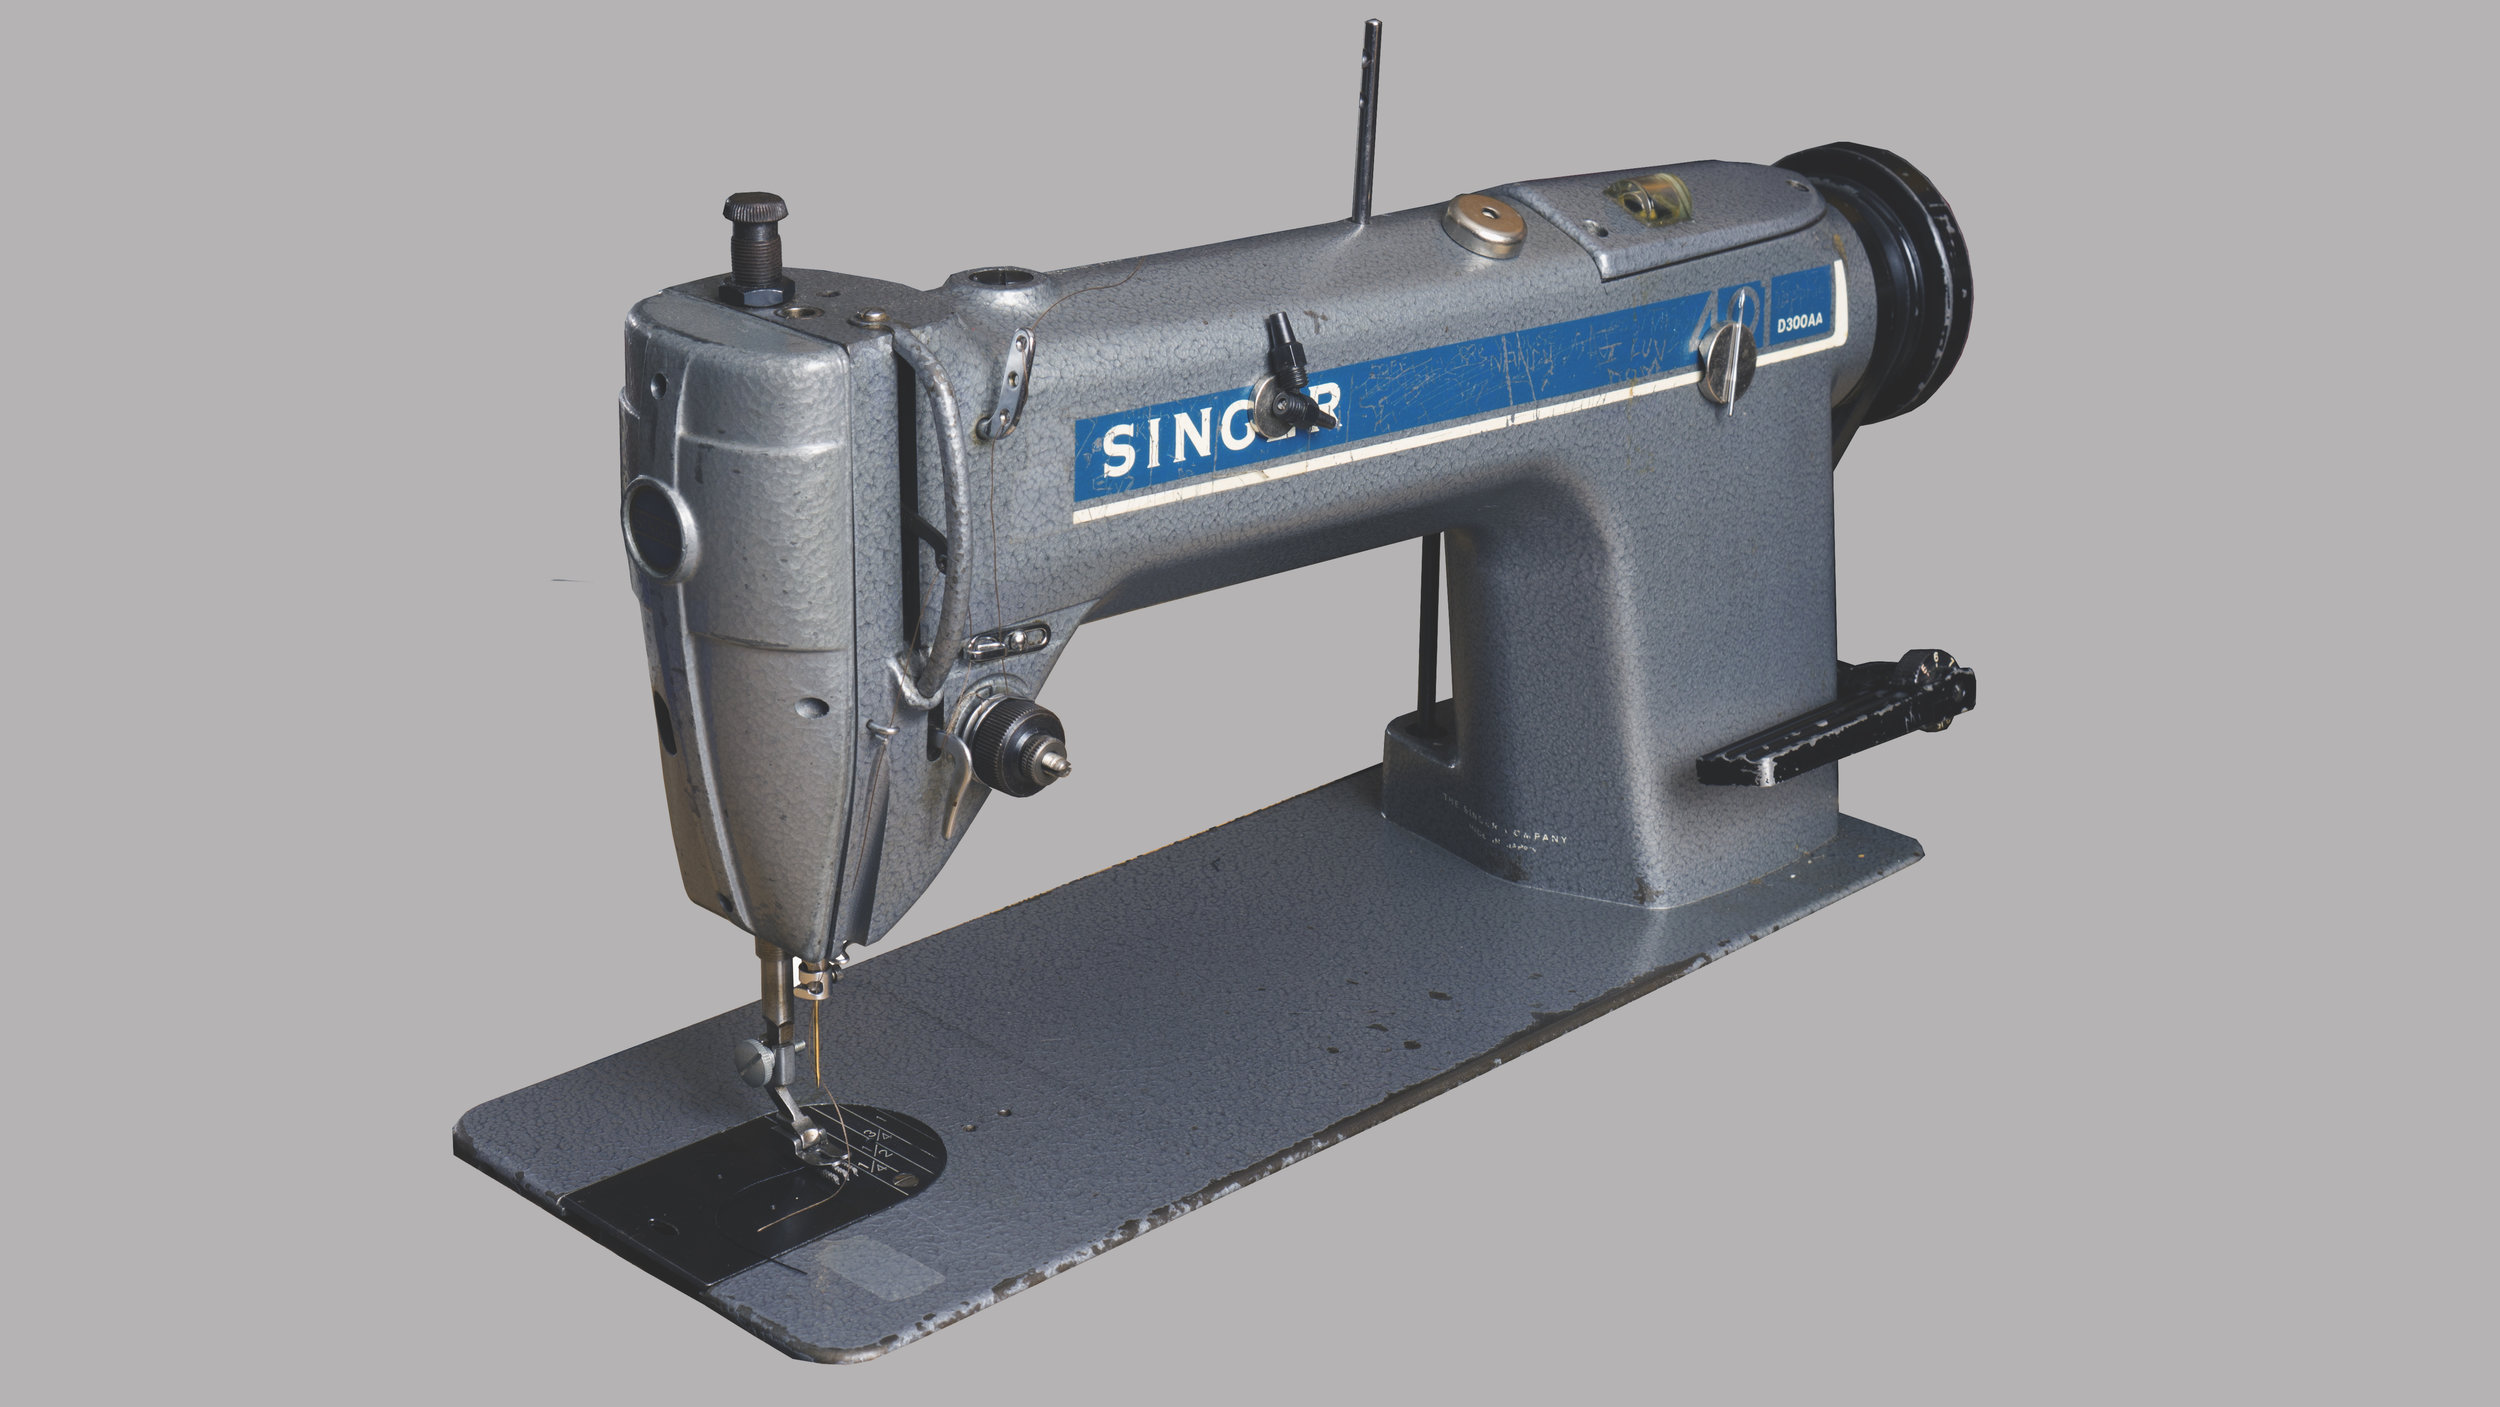 OL' TRUSTY - We picked up two of these Singer 495's from a tech school retiring it's older machines back when we first started. This guys' an excellent straight-stitch machine we work a lot of our light-medium duty pieces through.